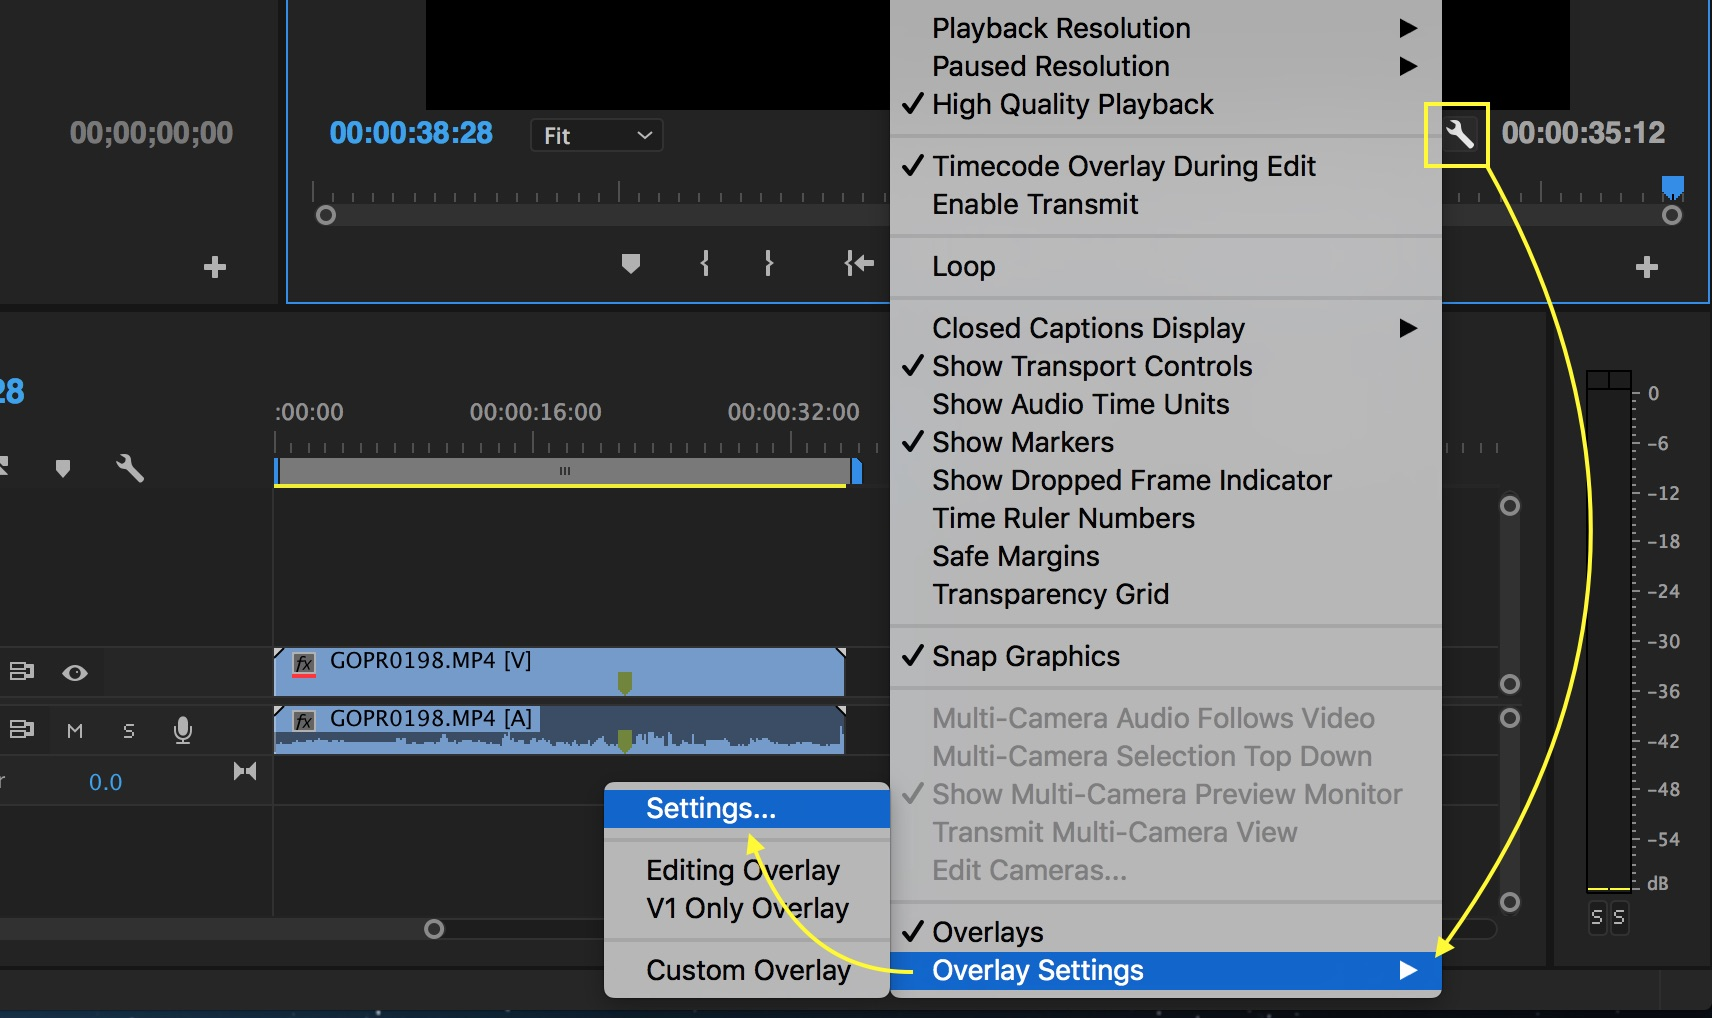 overlay-settings-menu-premiere-pro.jpg